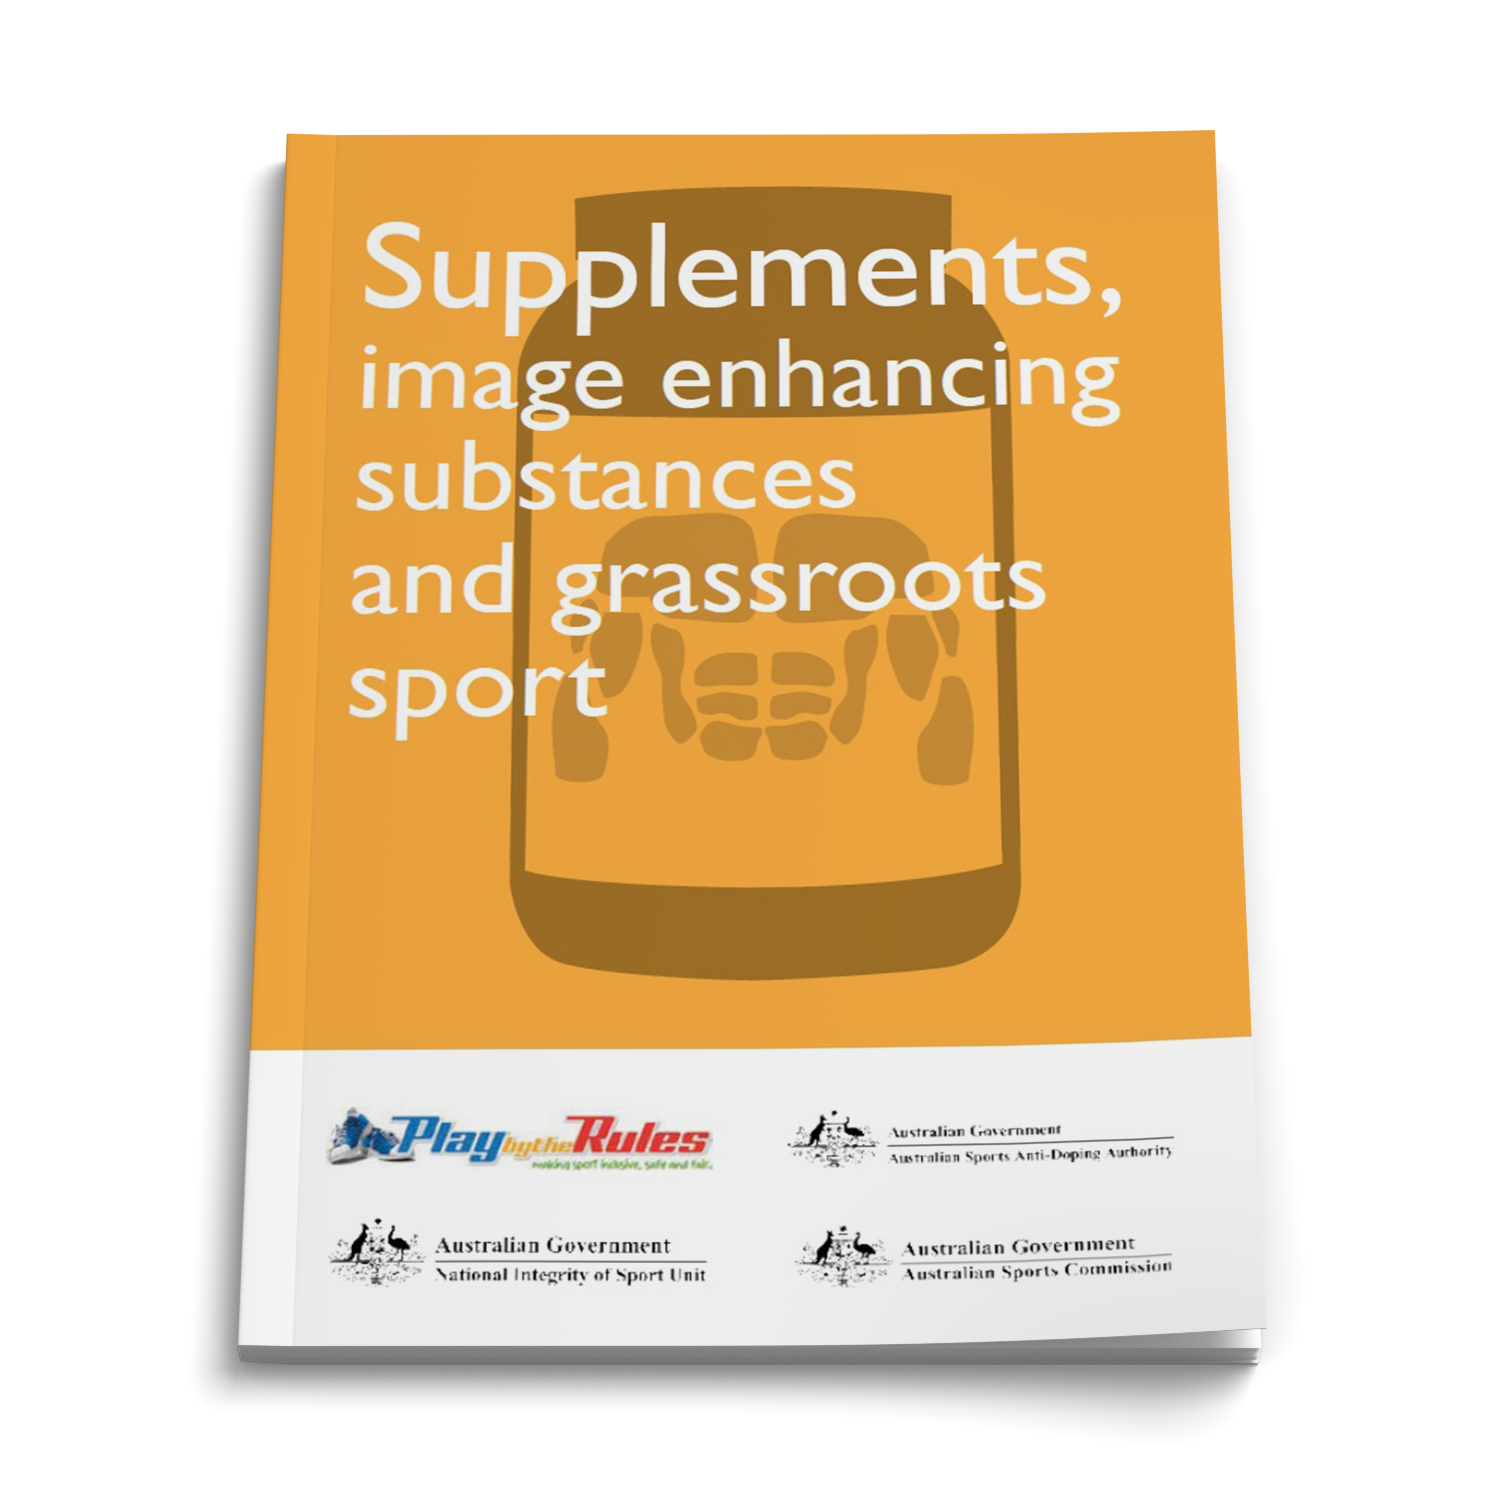 Supplements and image enhancing substances